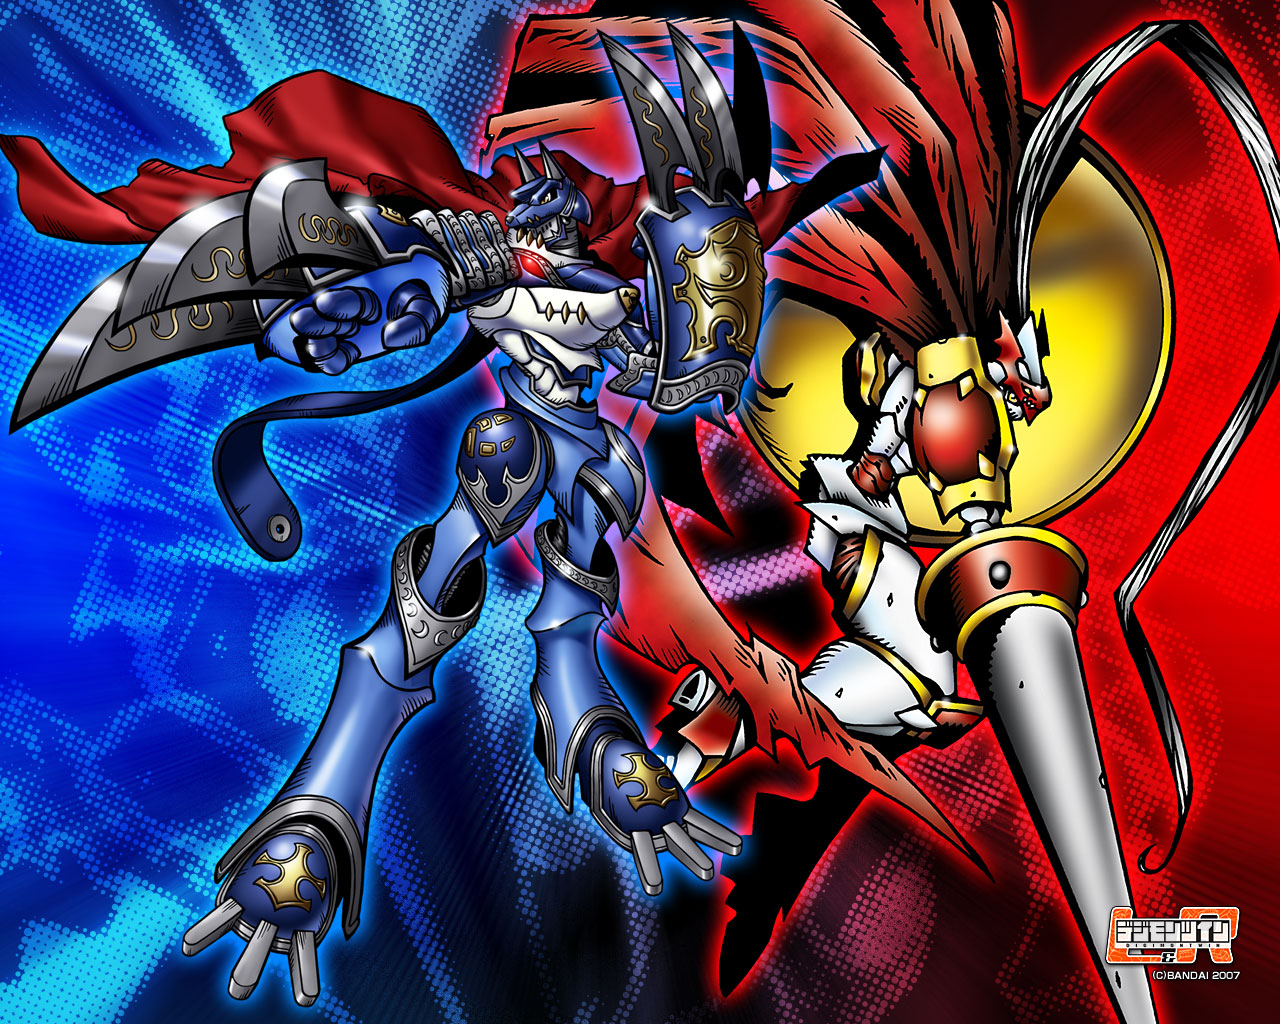 Wallpapers Digimon HD Wallpapers Download Free Images Wallpaper [1000image.com]